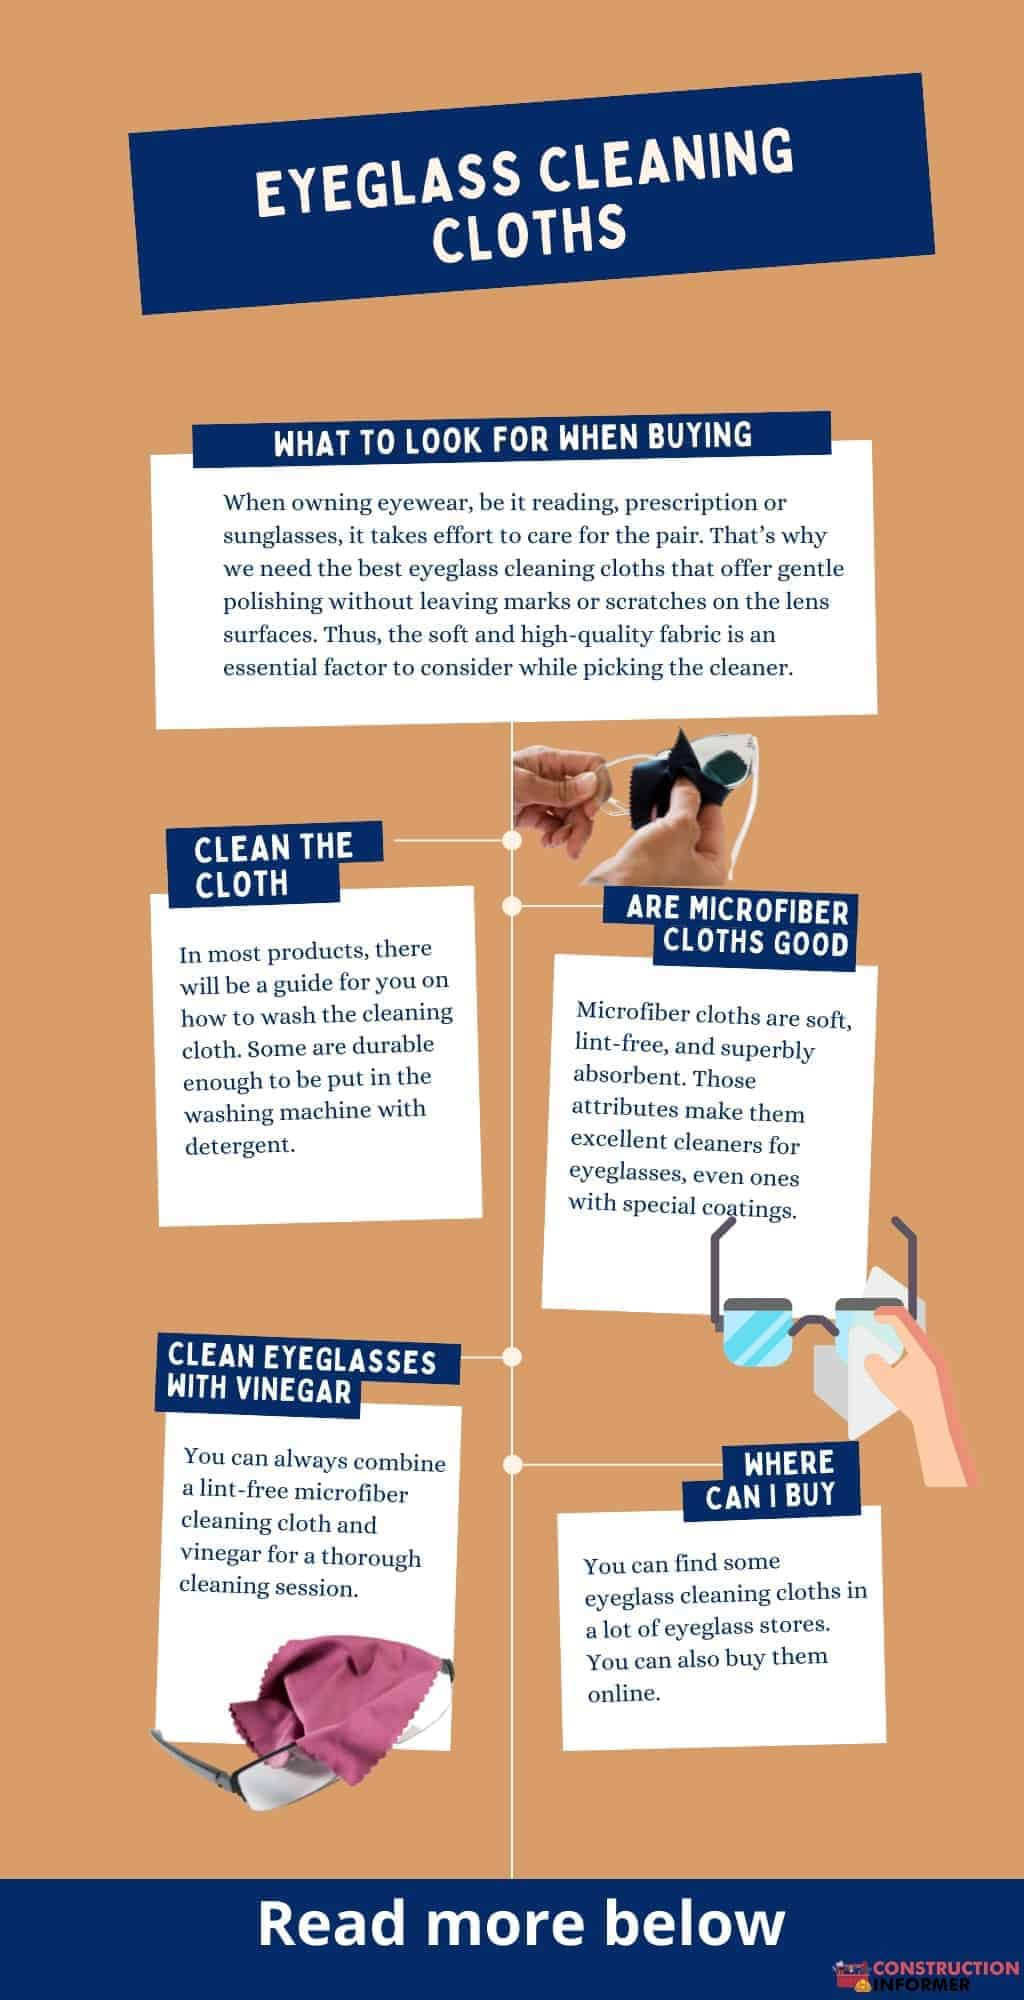 eye-glass-cleaning-cloth